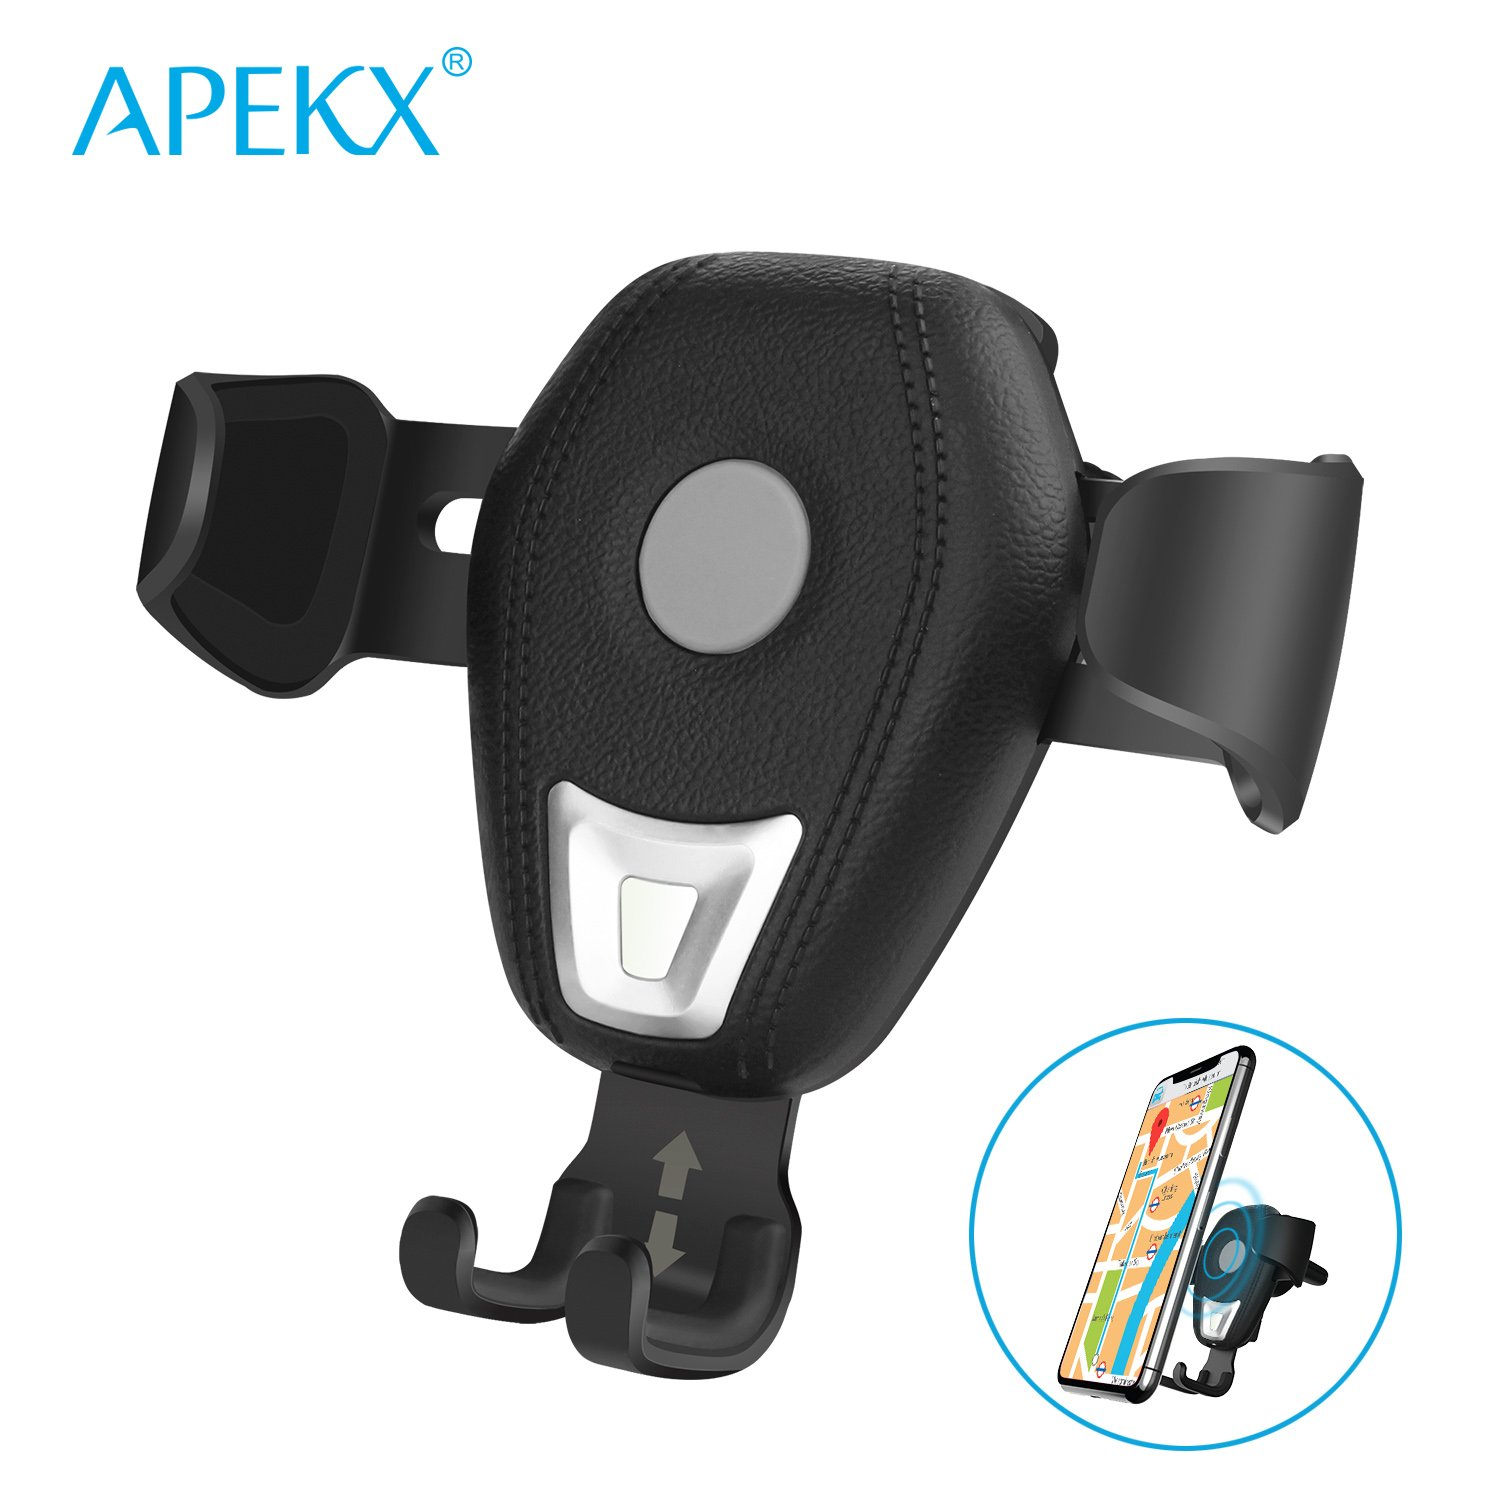 APEKX Qi Gravity Wireless Car Mount Charger, Wireless Charging Air Vent Cradle Phone Holder with Usb Car Adapter for iPhone X,8/8 Plus, Samsung Galaxy S9 S8 Plus S7 edge Note 8 & other Smartphone